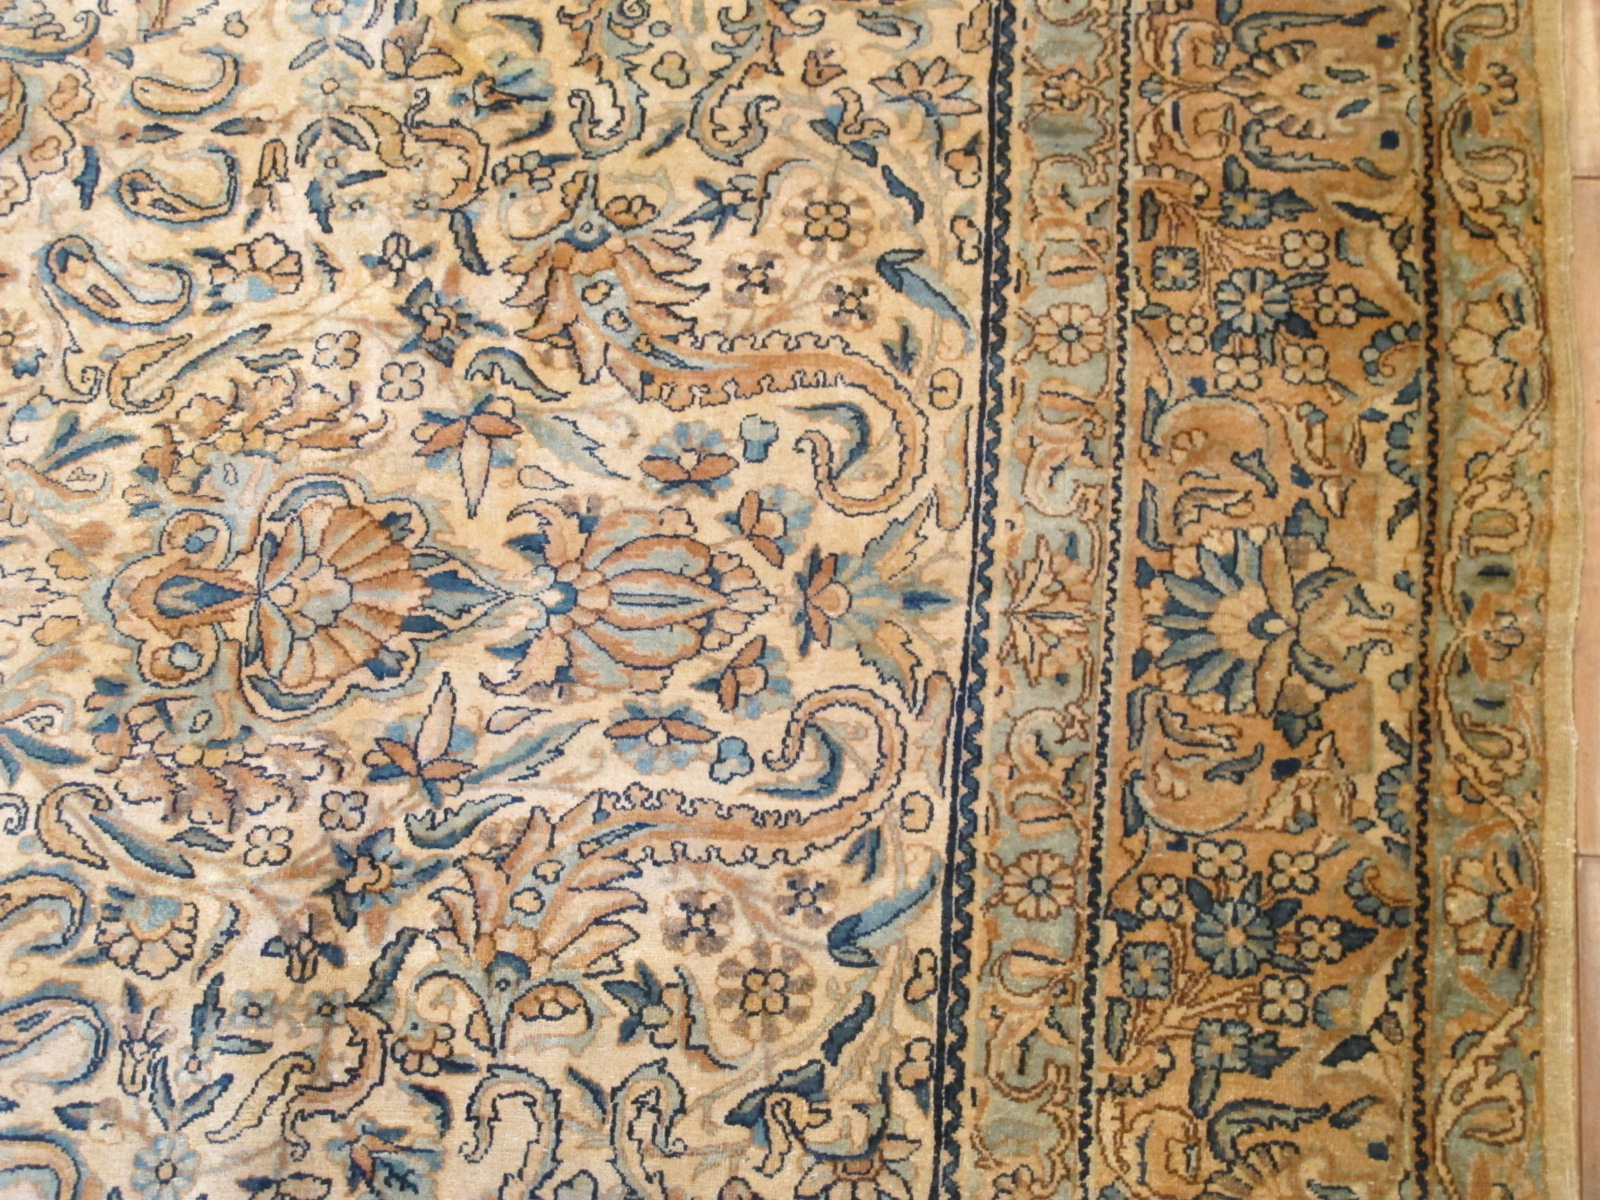 12850 semi antique persian kirman rug 7,11 x 10,8 (4) - Copy